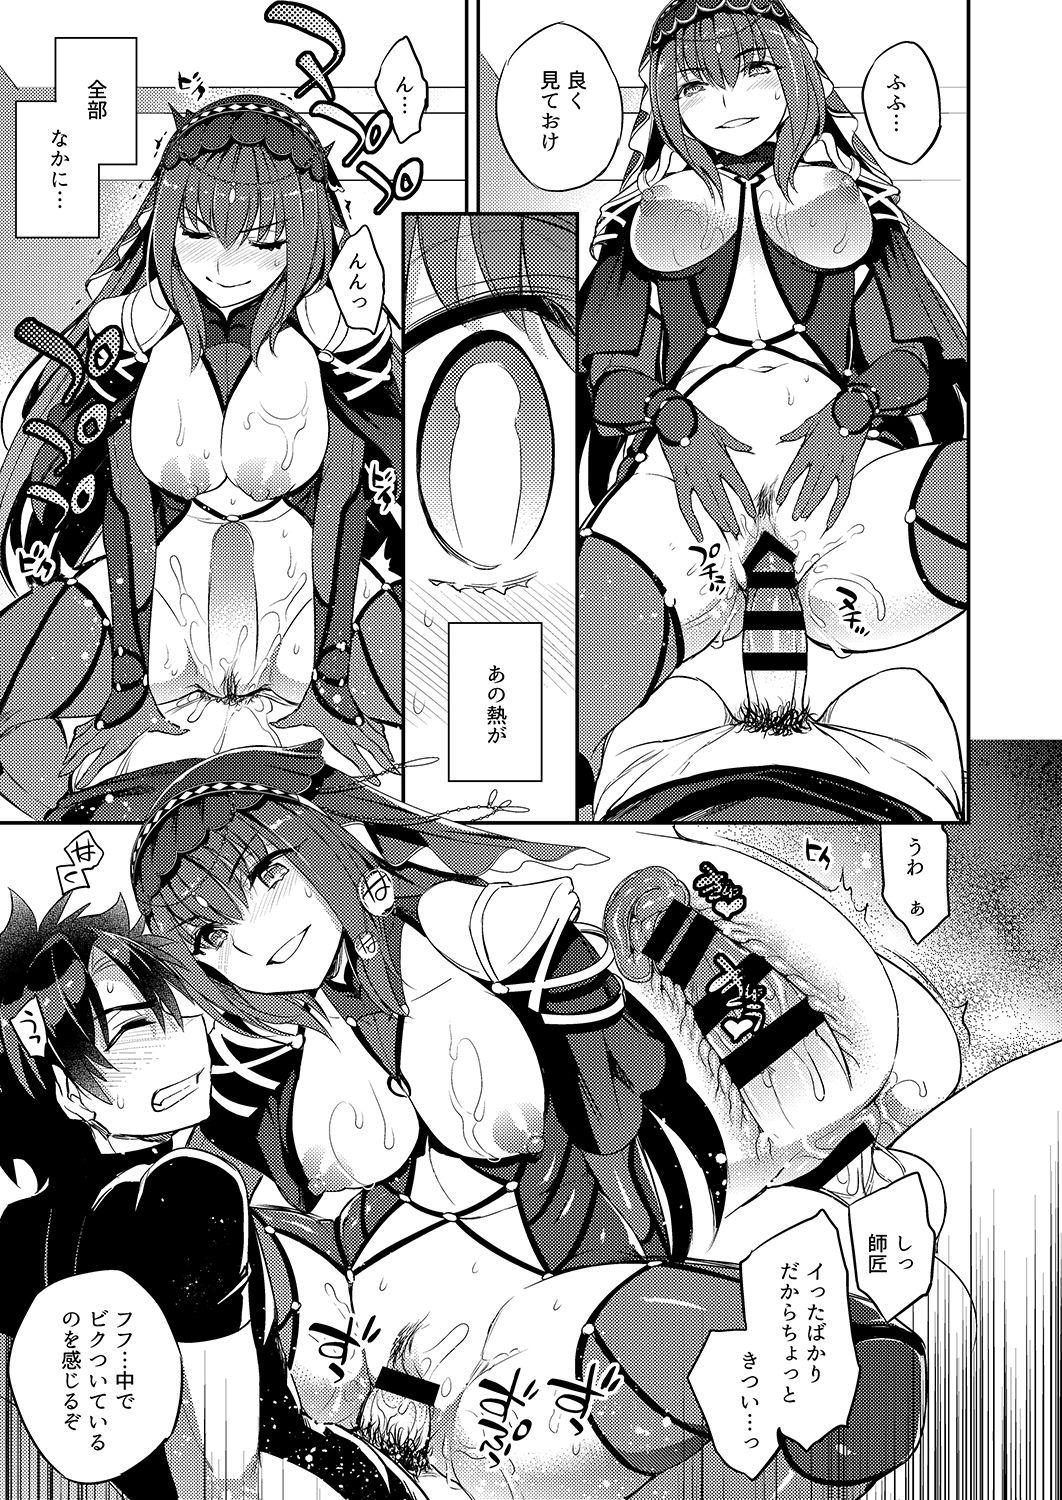 C9-39 W Scathach to 14